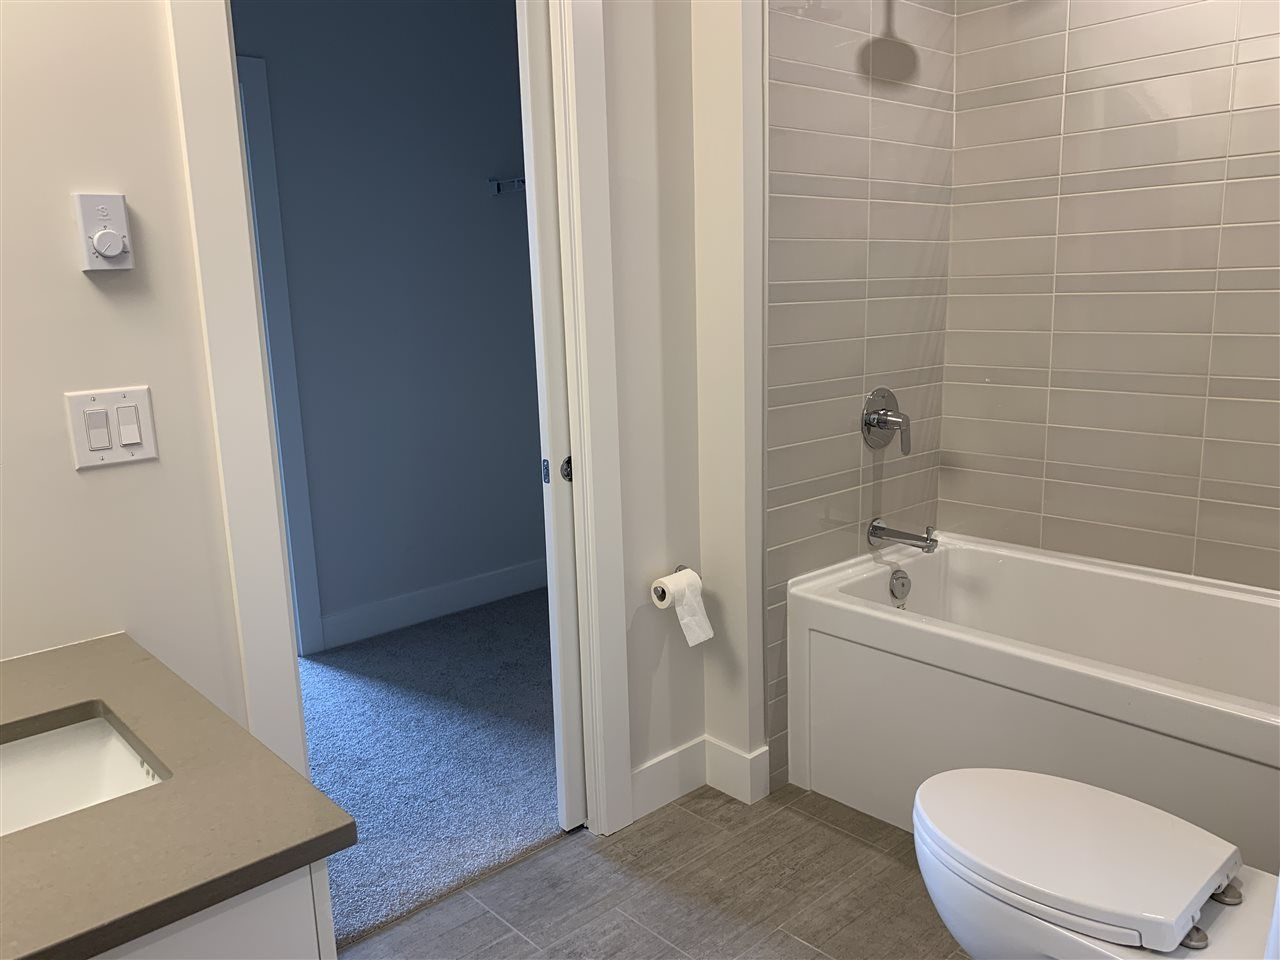 """Photo 8: Photos: 206 2555 WARE Street in Abbotsford: Central Abbotsford Condo for sale in """"MILL DISTRICT"""" : MLS®# R2502197"""